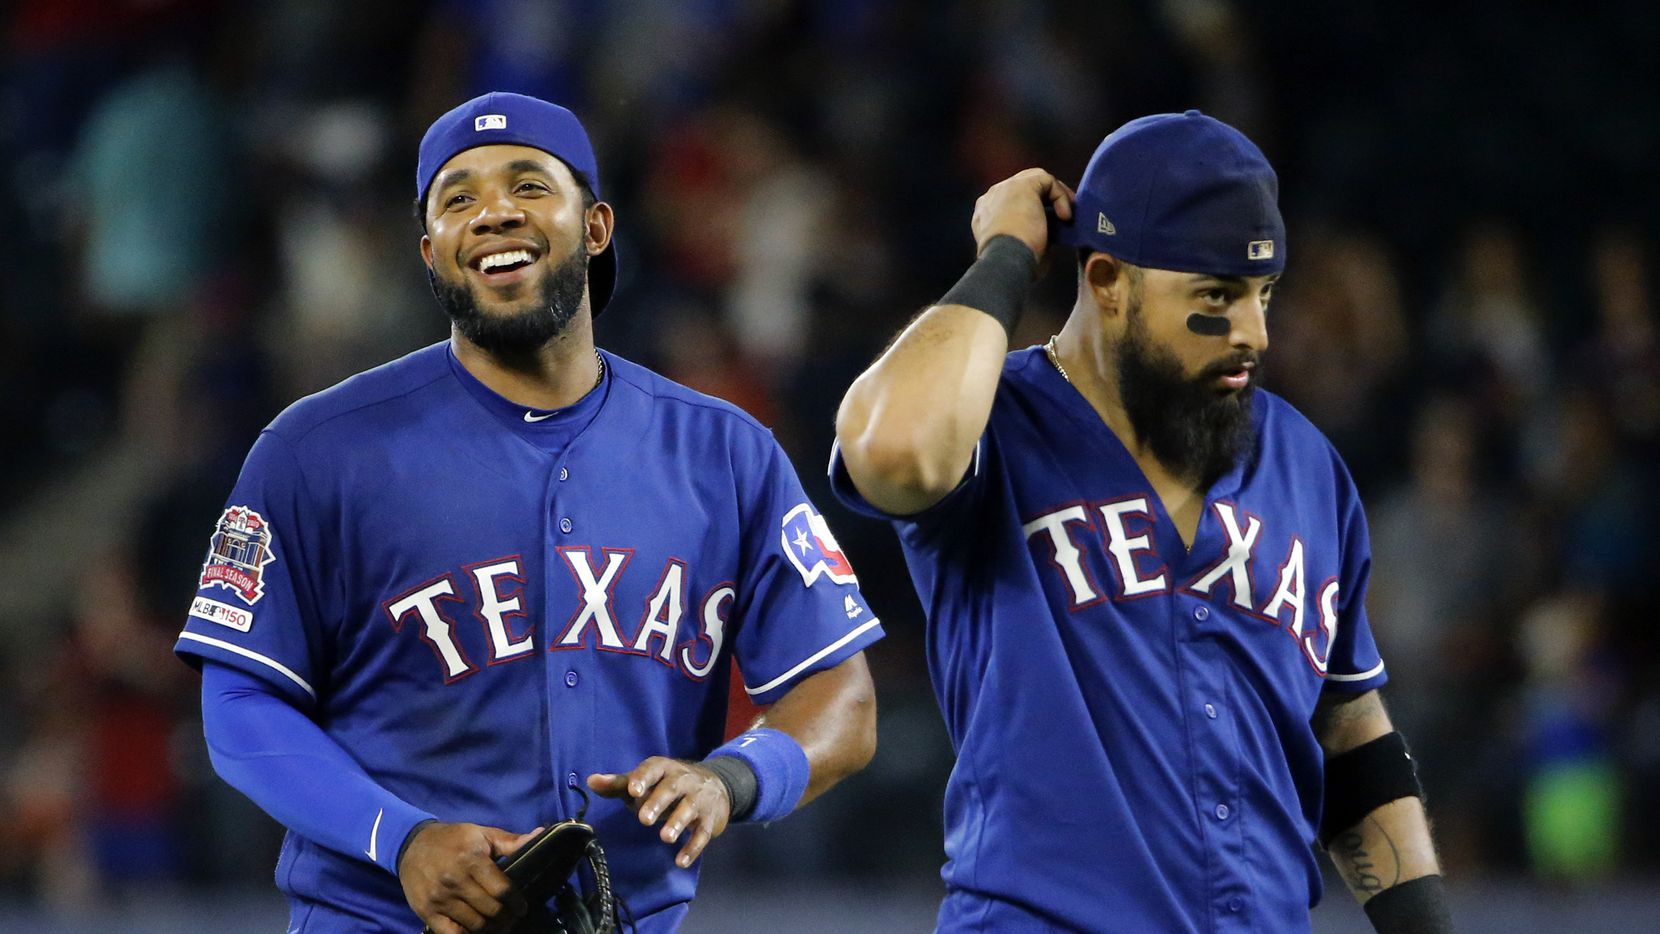 Texas Rangers shortstop Elvis Andrus (left) and second baseman Rougned Odor (right) are pictured following their win over the Houston Astros at Globe Life Park in Arlington, Texas, Thursday, July 11, 2019.